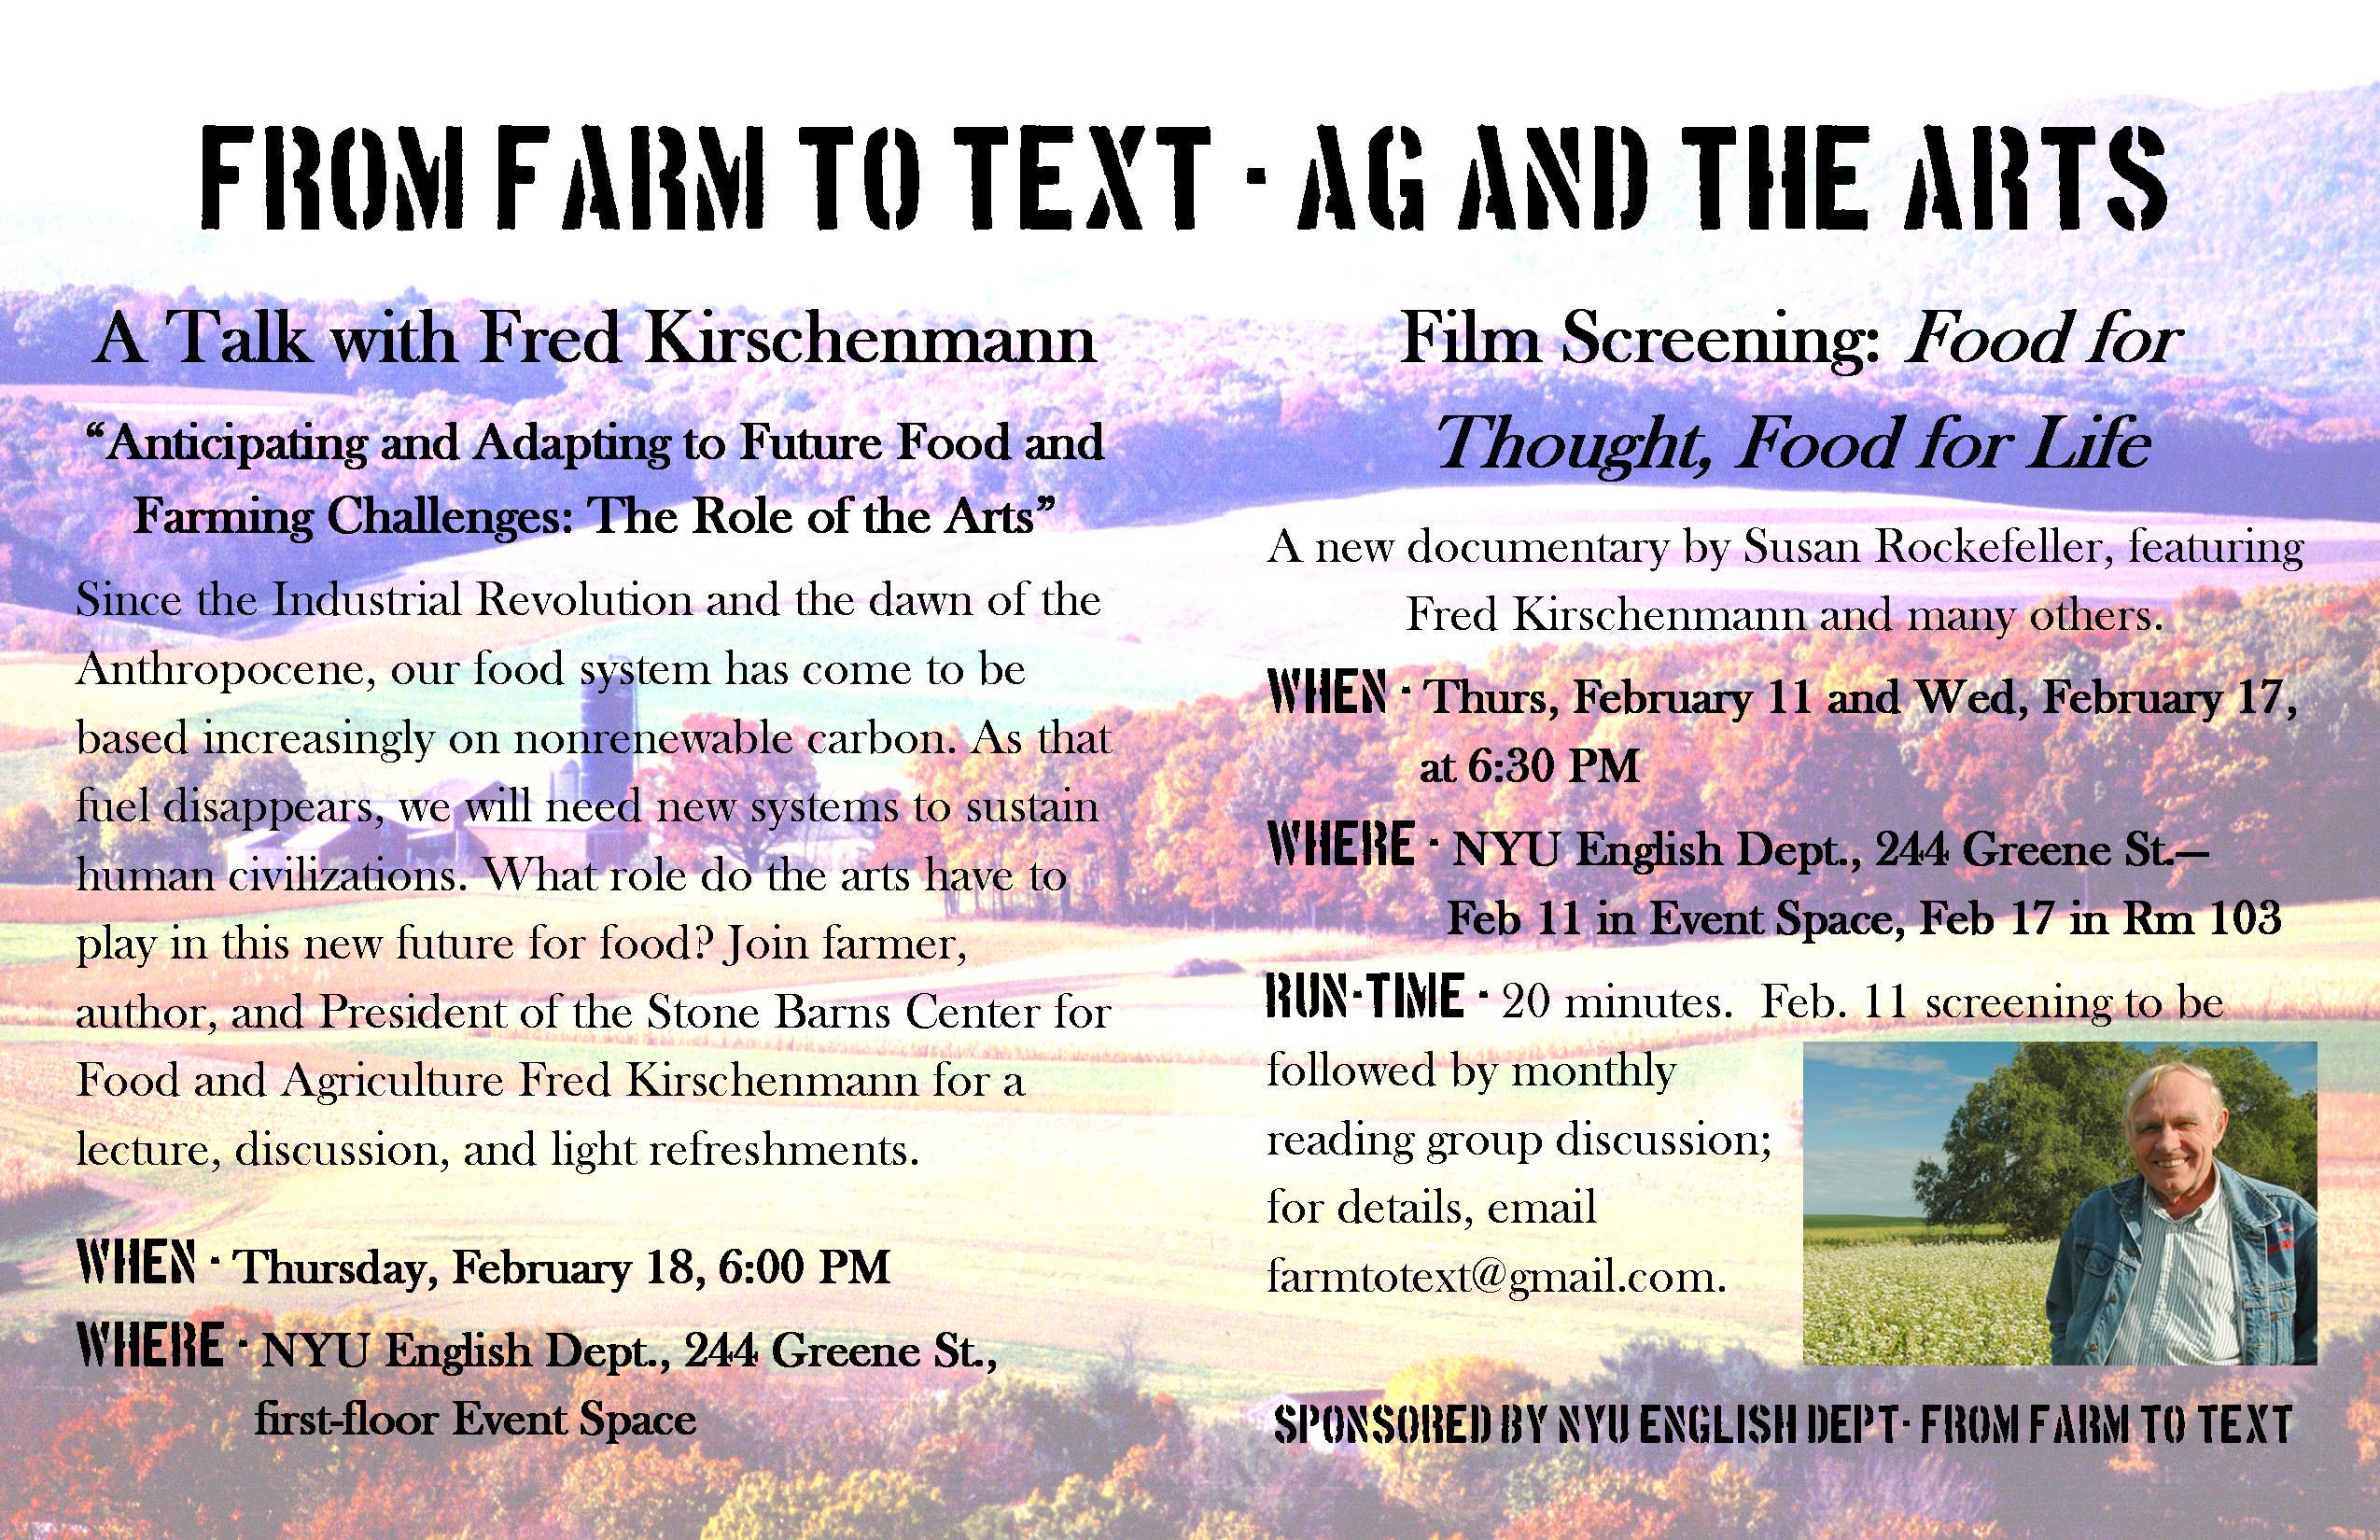 From Farm to Text - Ag and the Arts, February Events featuring Fred Kirschenmann